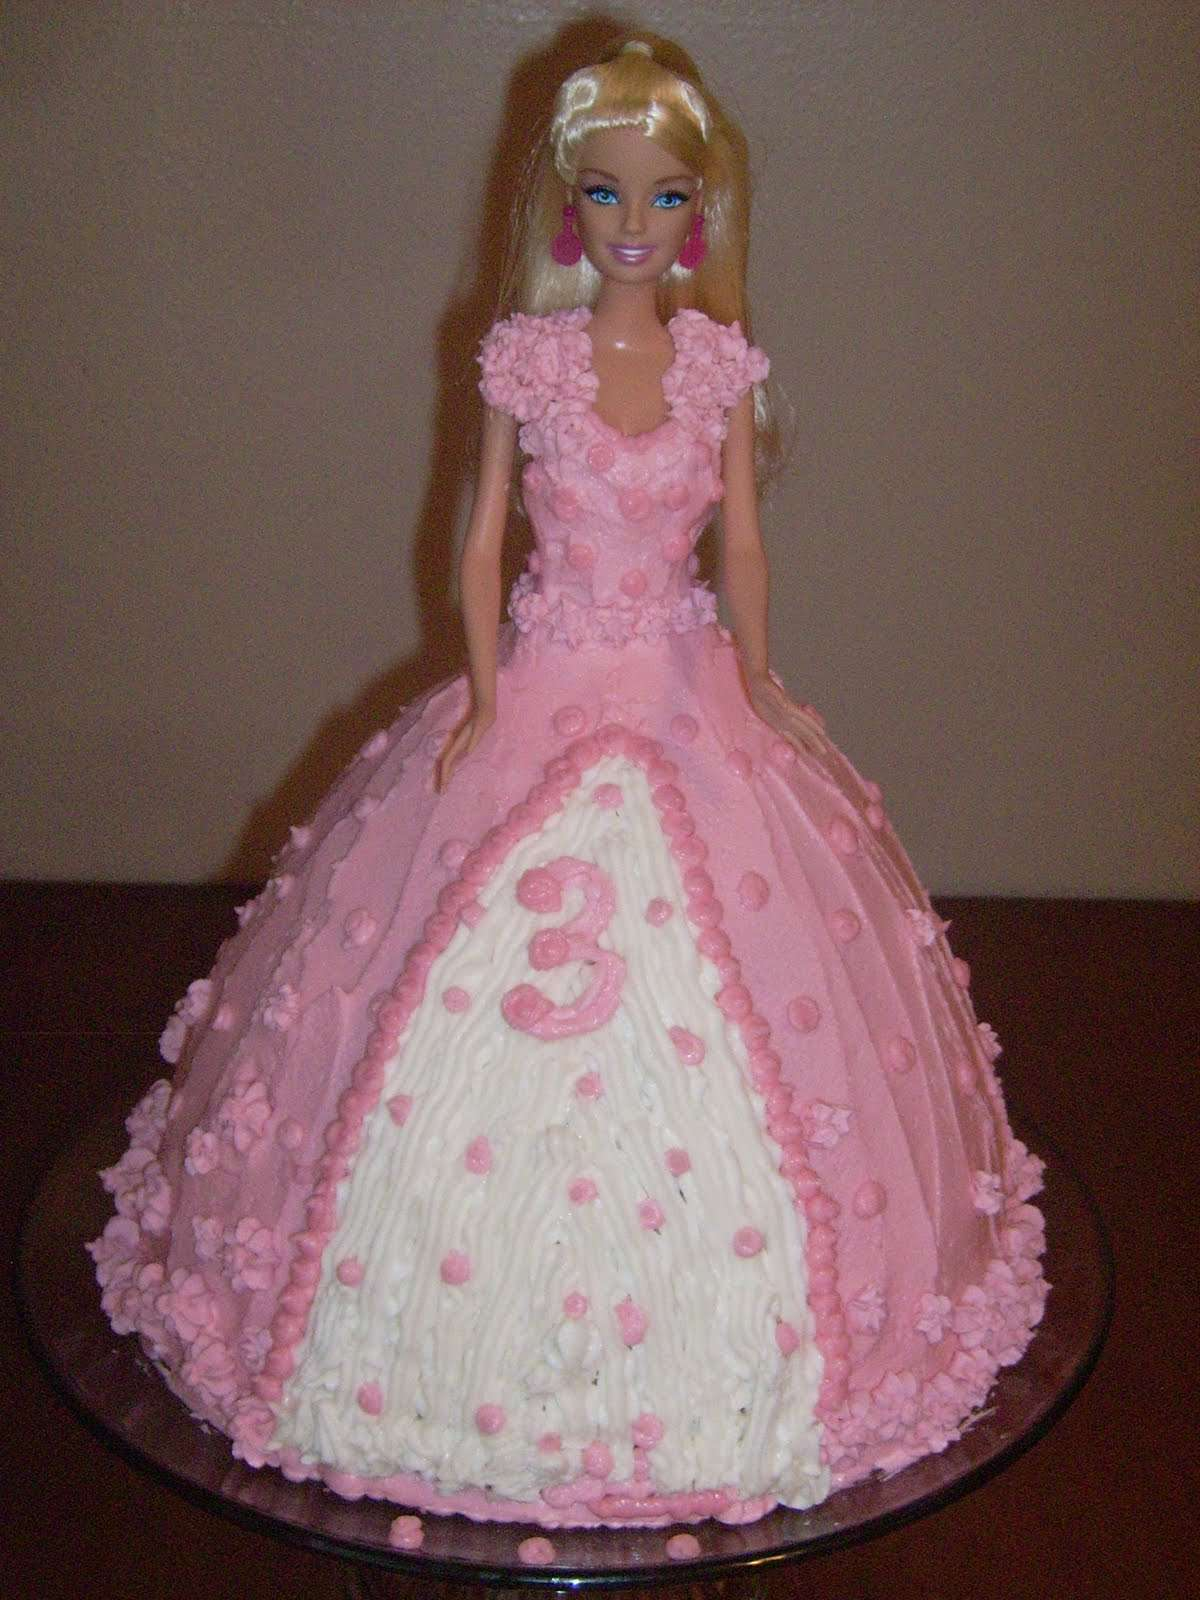 Barbie Doll Wallpapers 51 Hd Wallpapers